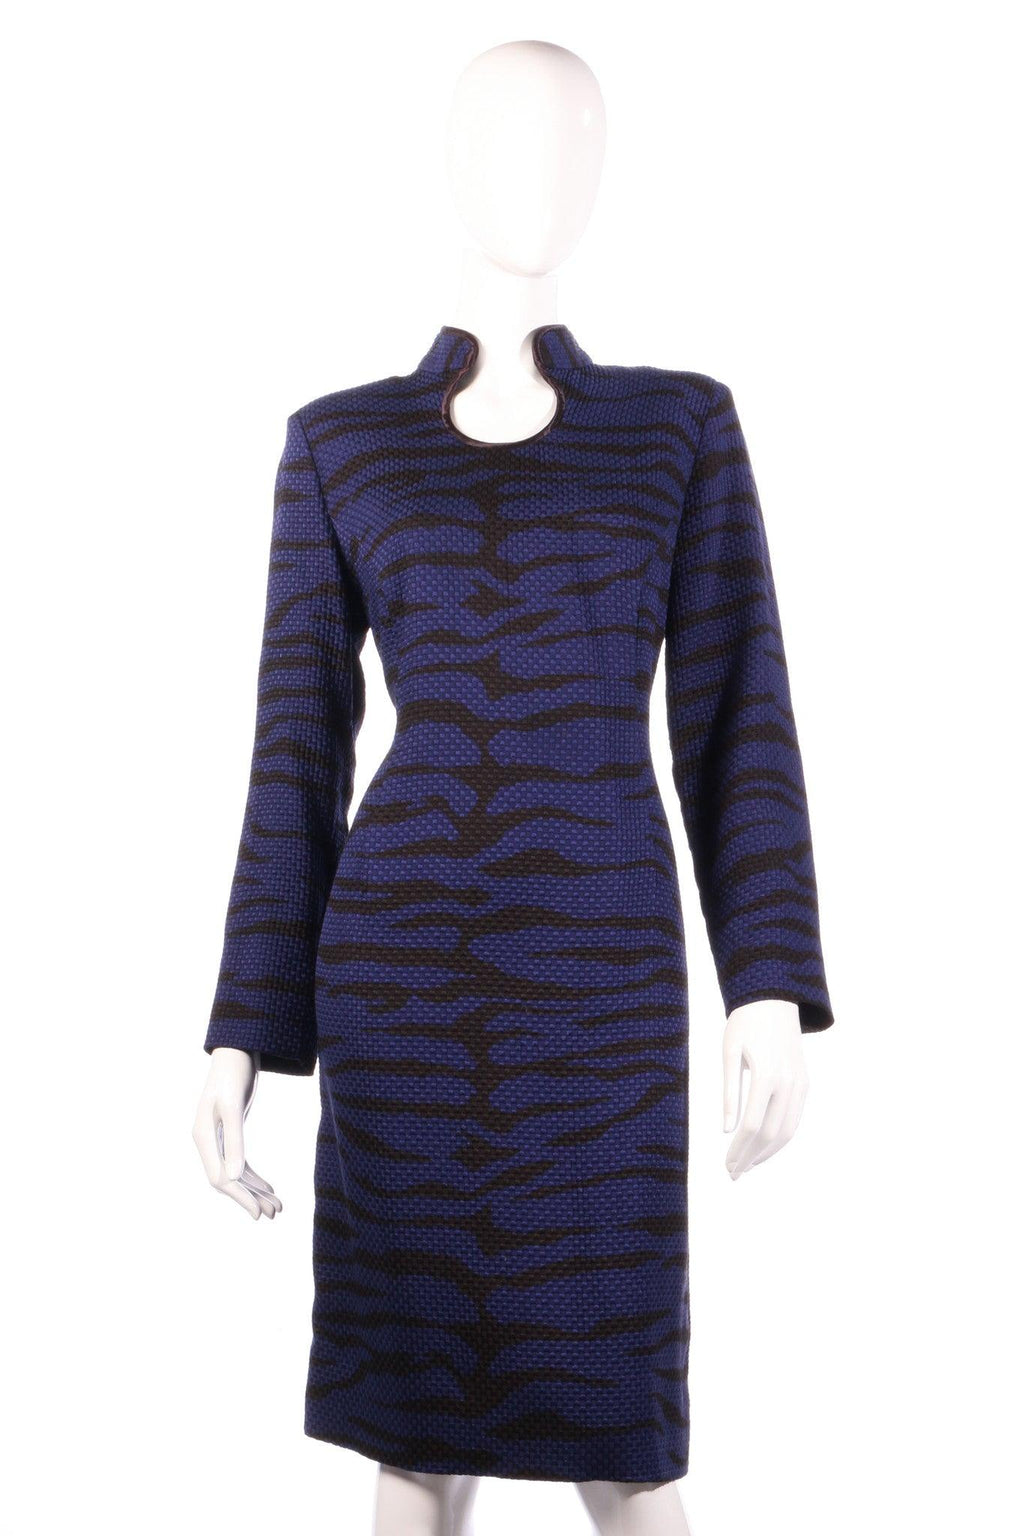 Purple zebra print dress